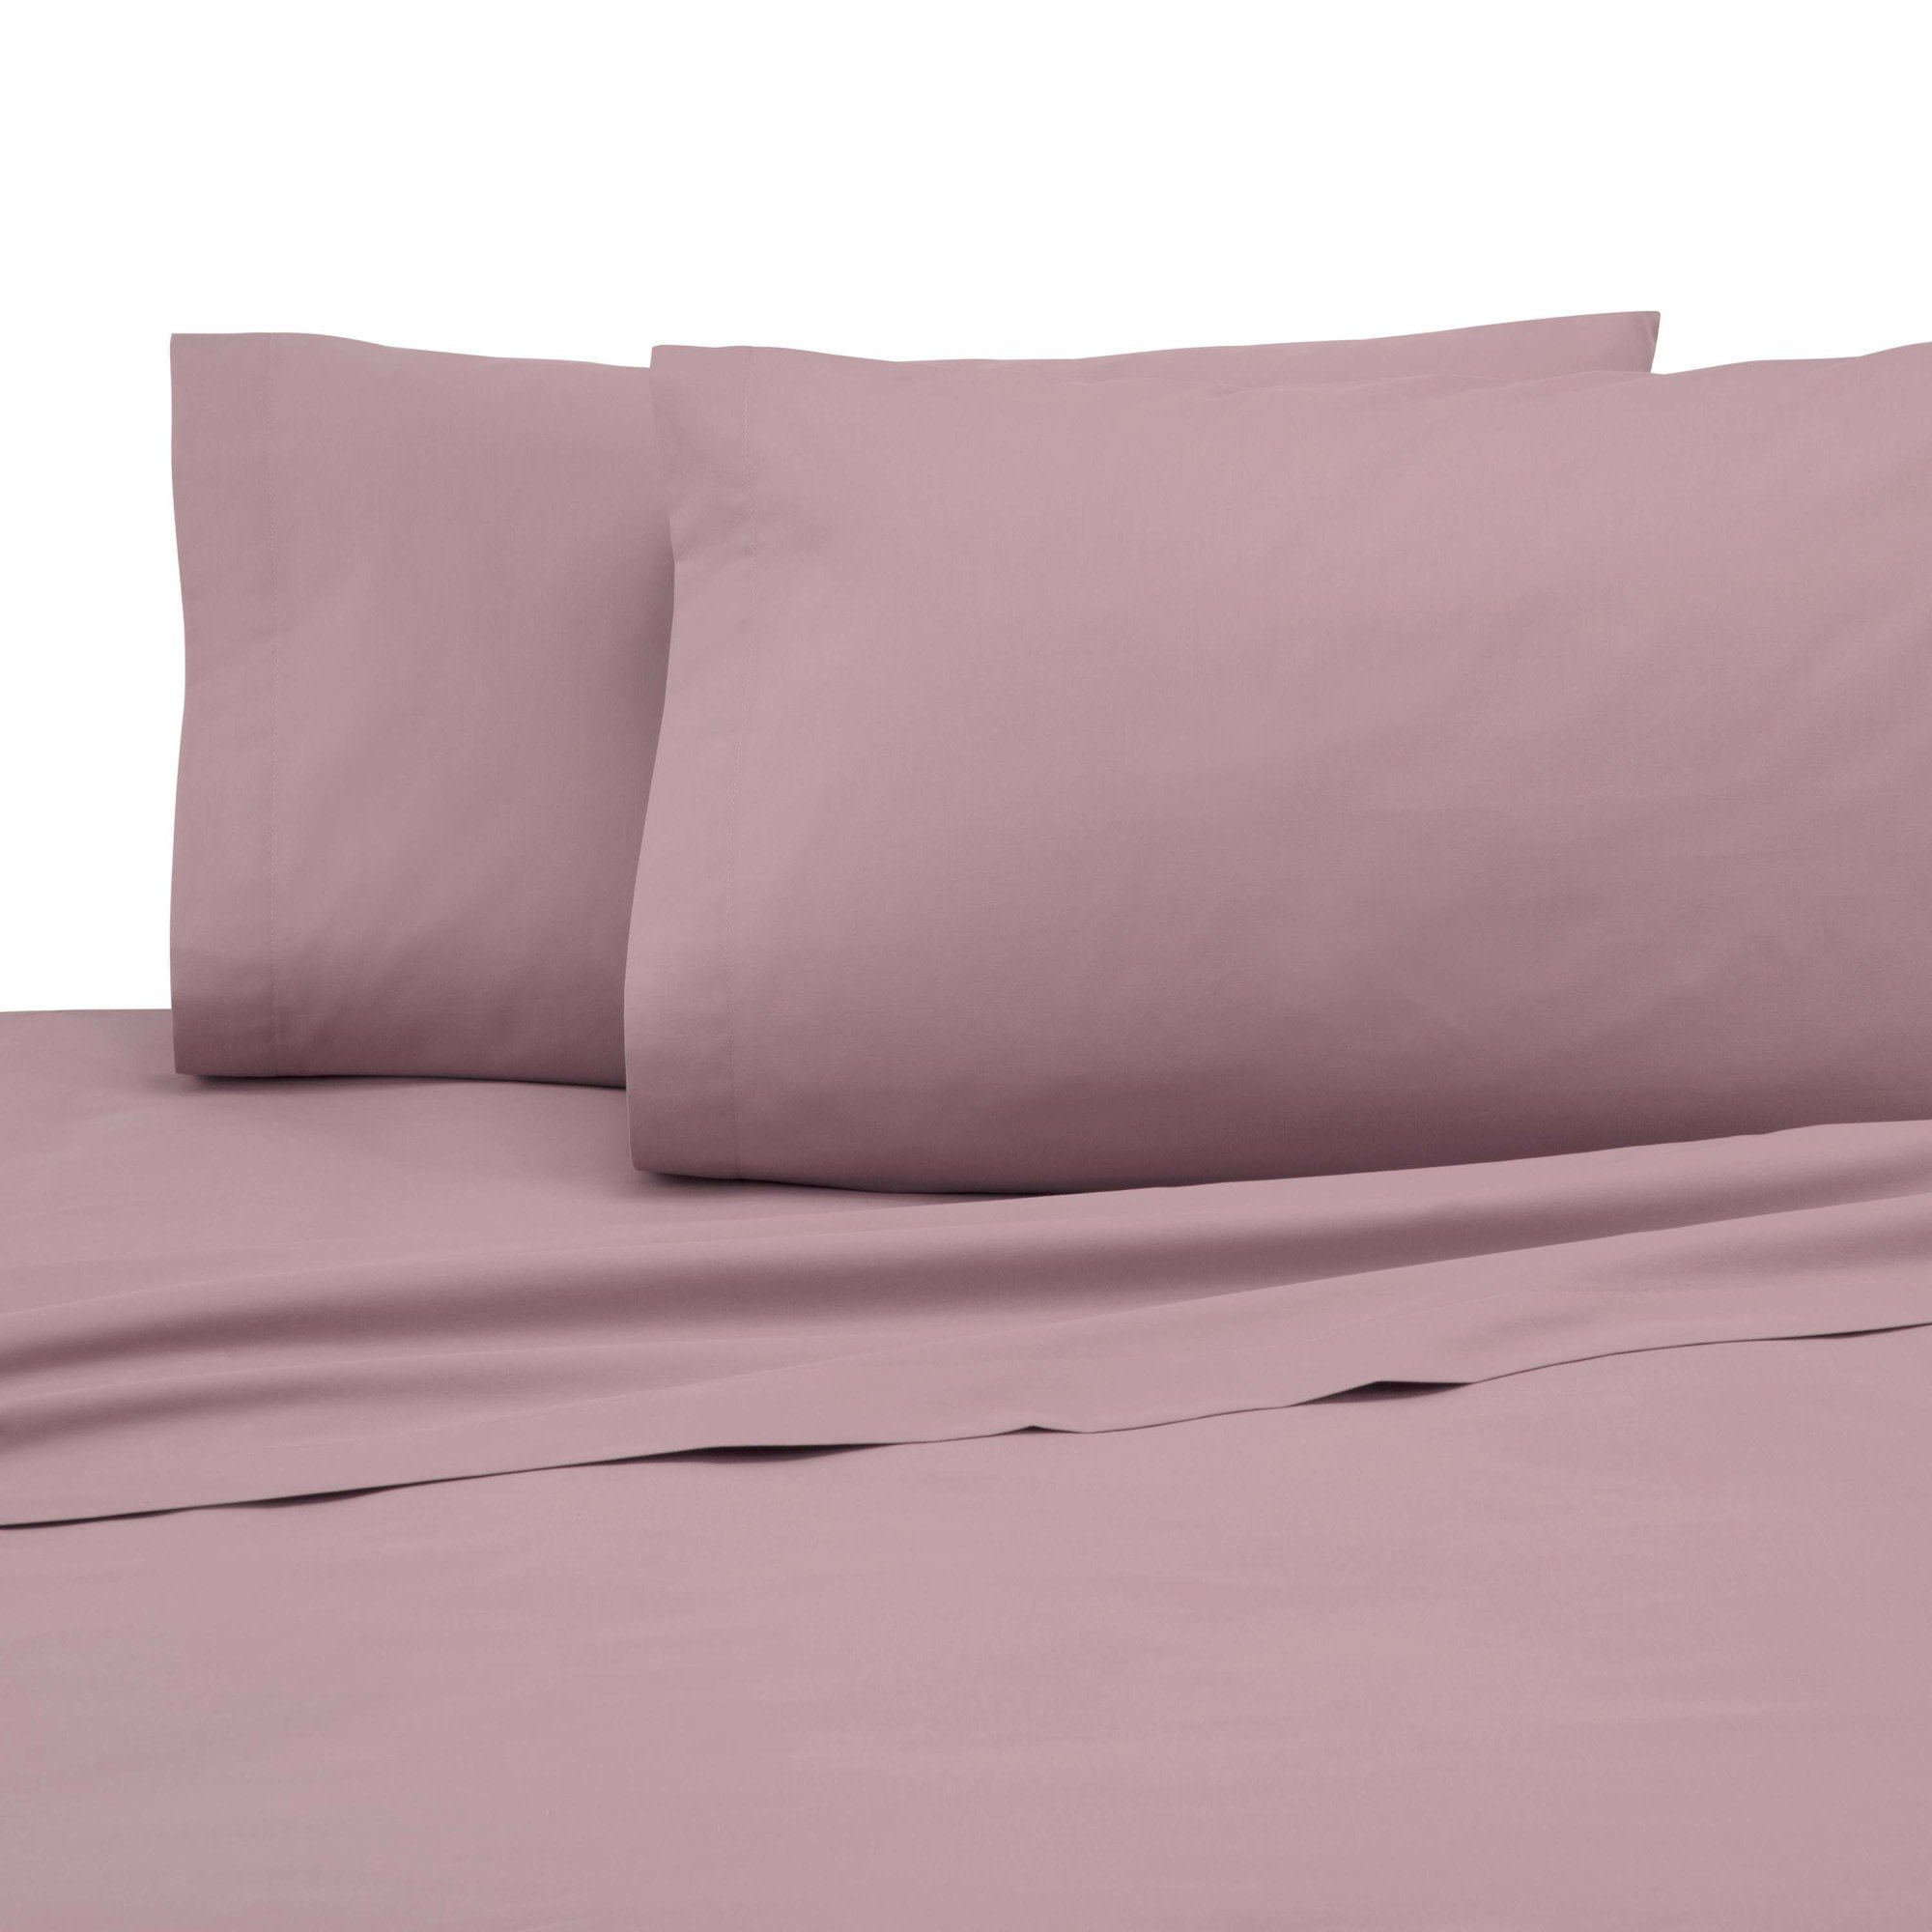 Martex Cotton Rich Pillowcase Pair - Brushed Cotton Blend, Super Soft Finish, Wrinkle Resistant, Quick Drying,  Bedroom, Guest Room  - 2-Piece Standard Pillowcase Pair, Dusty Rose